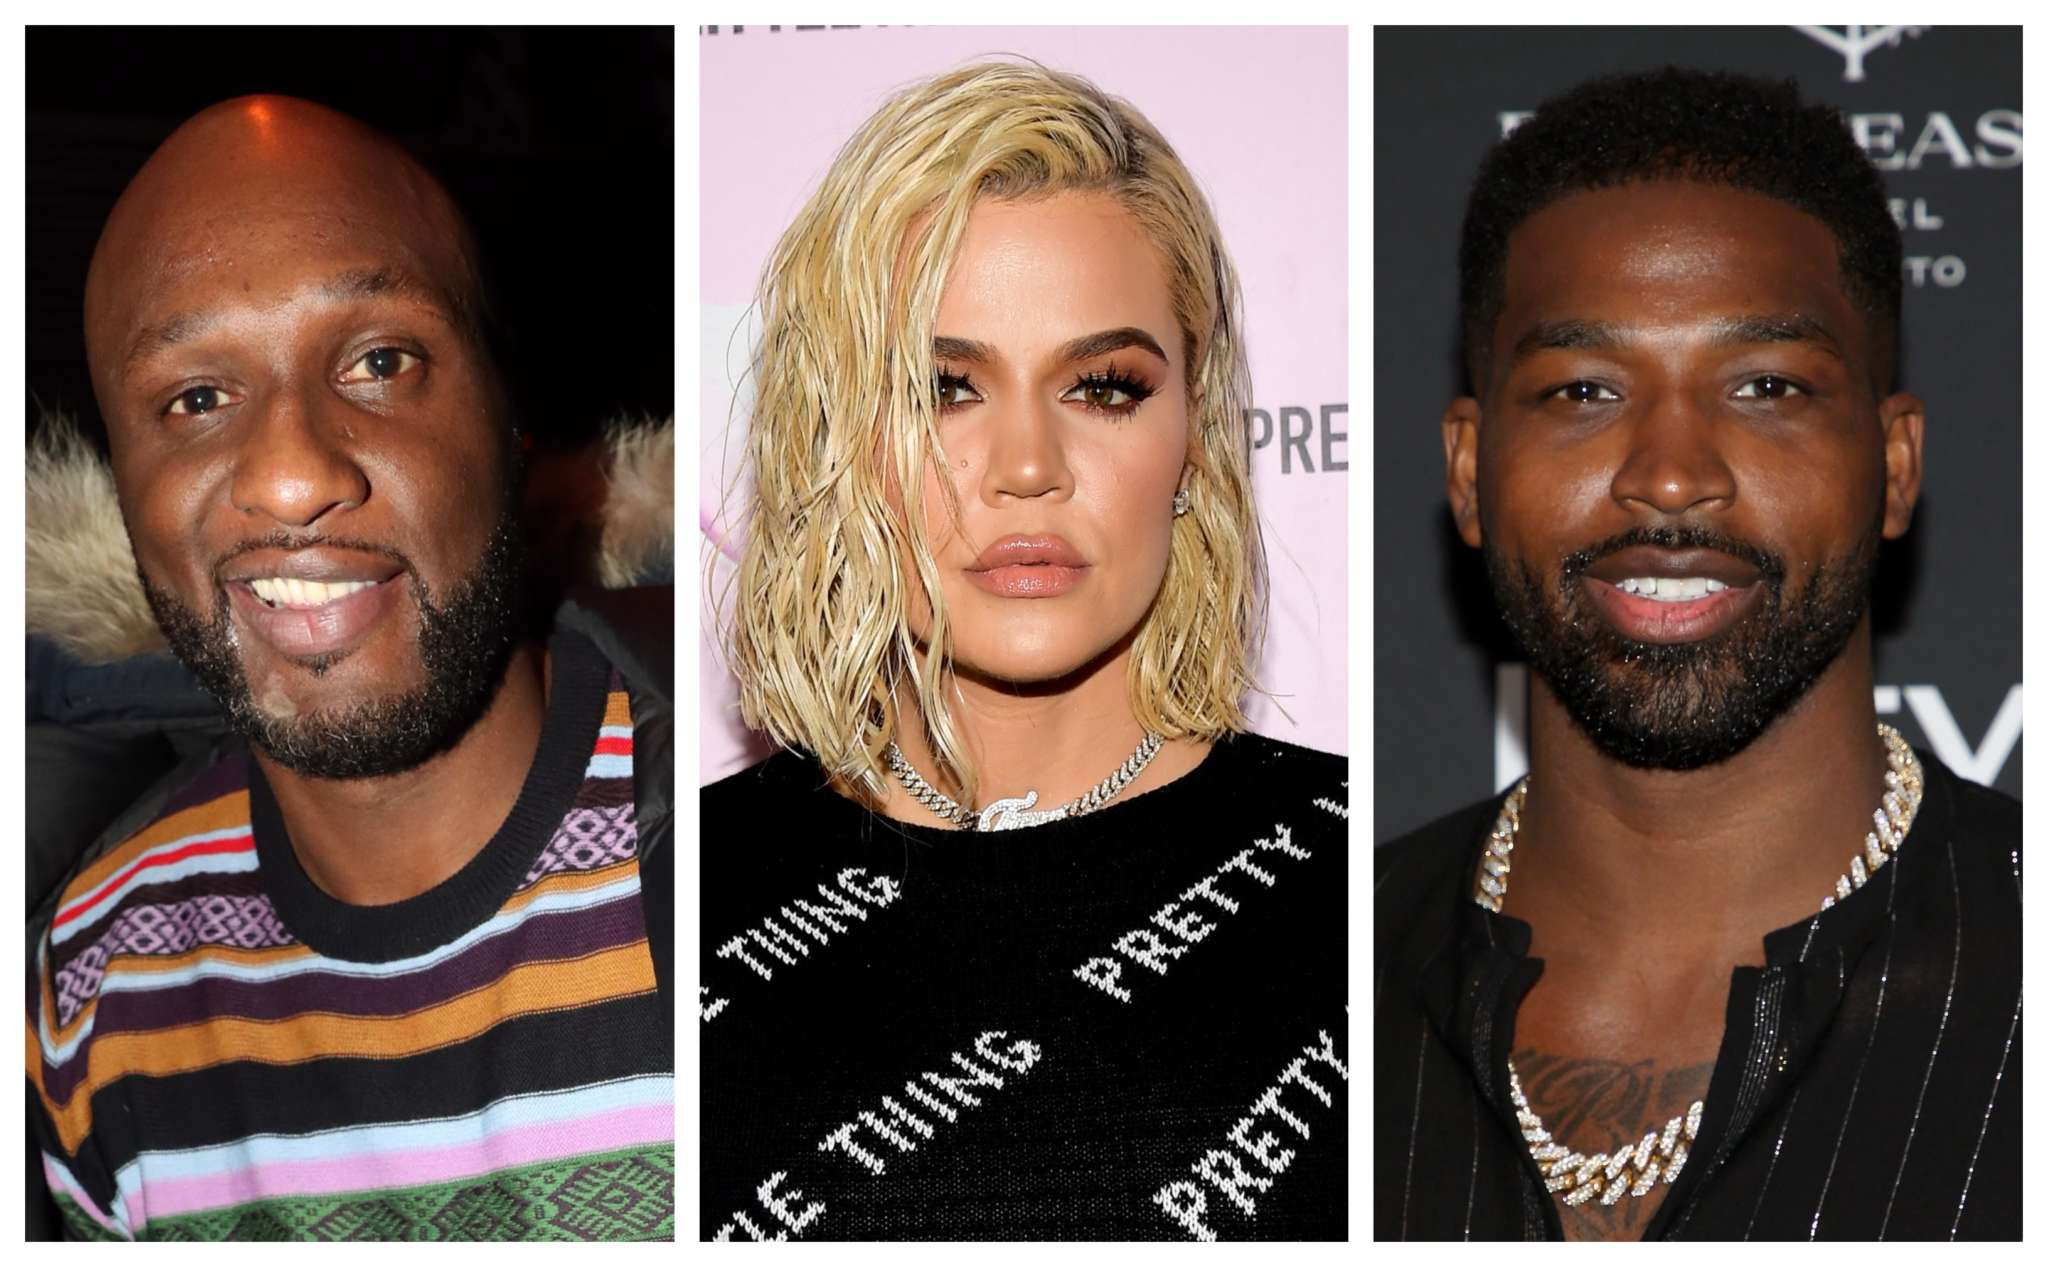 Lamar Odom Blasted Tristan Thompson For Cheating On Khloe Kardashian